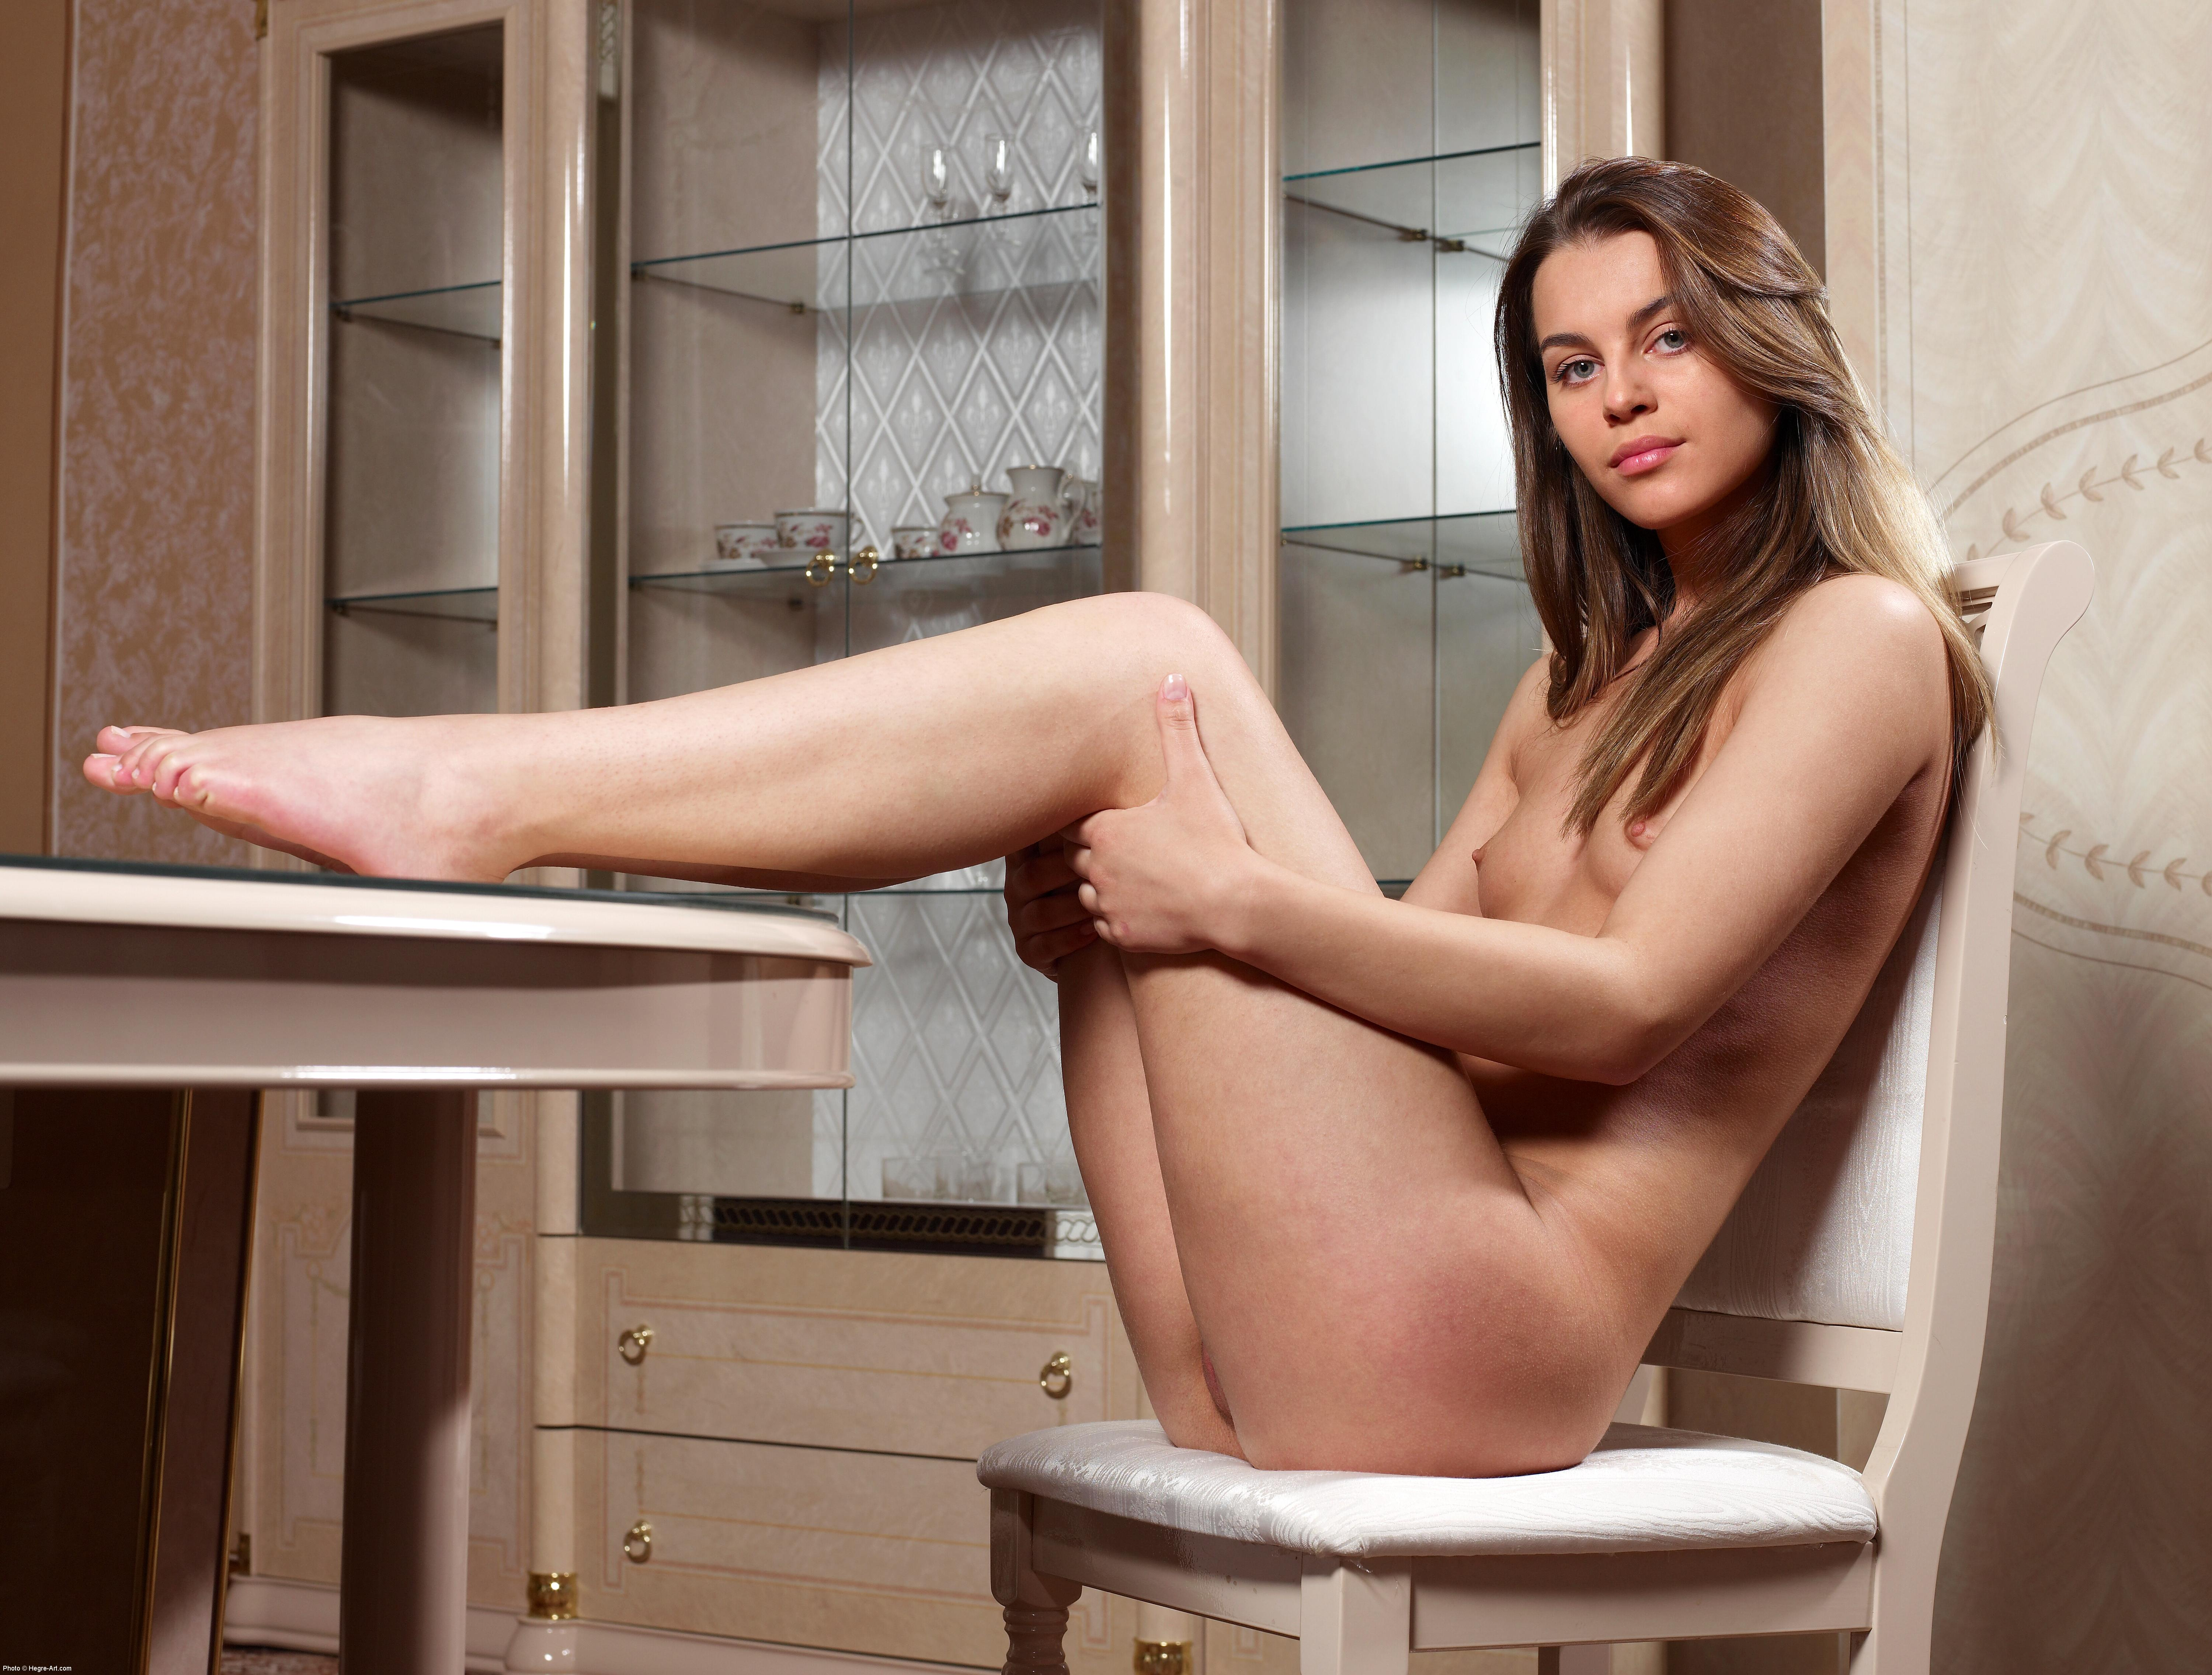 Naked At Home Videos